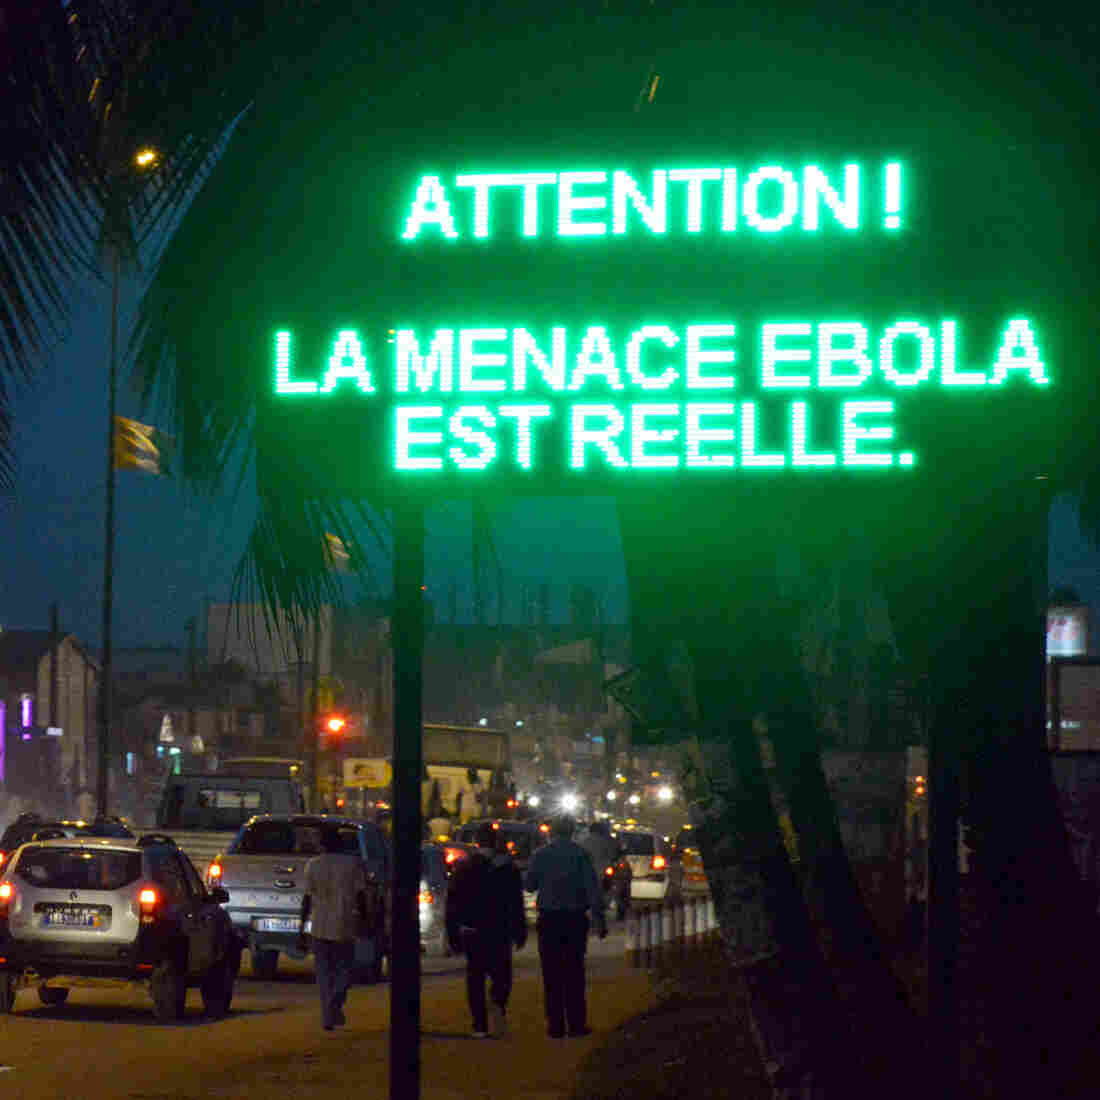 Denying Ebola Turns Out To Be A Very Human Response